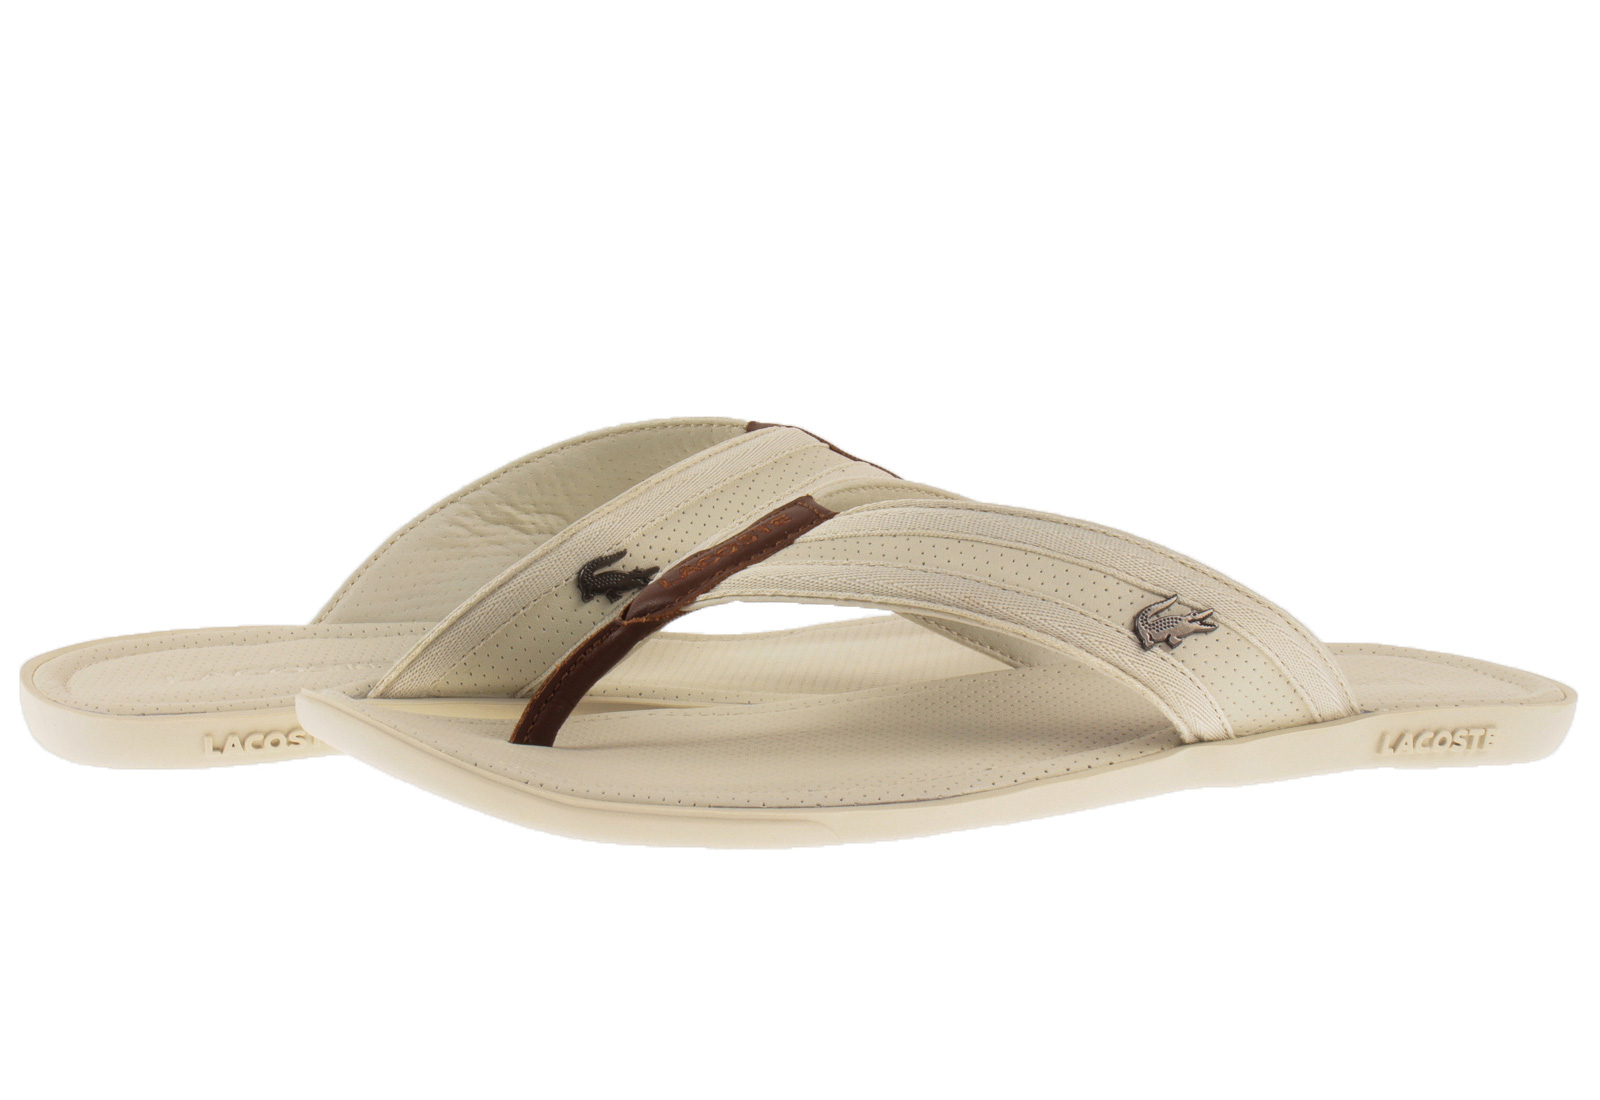 3b34efee9266 Lacoste Slippers - Carros - 13S-2226-001 - Online shop for sneakers ...